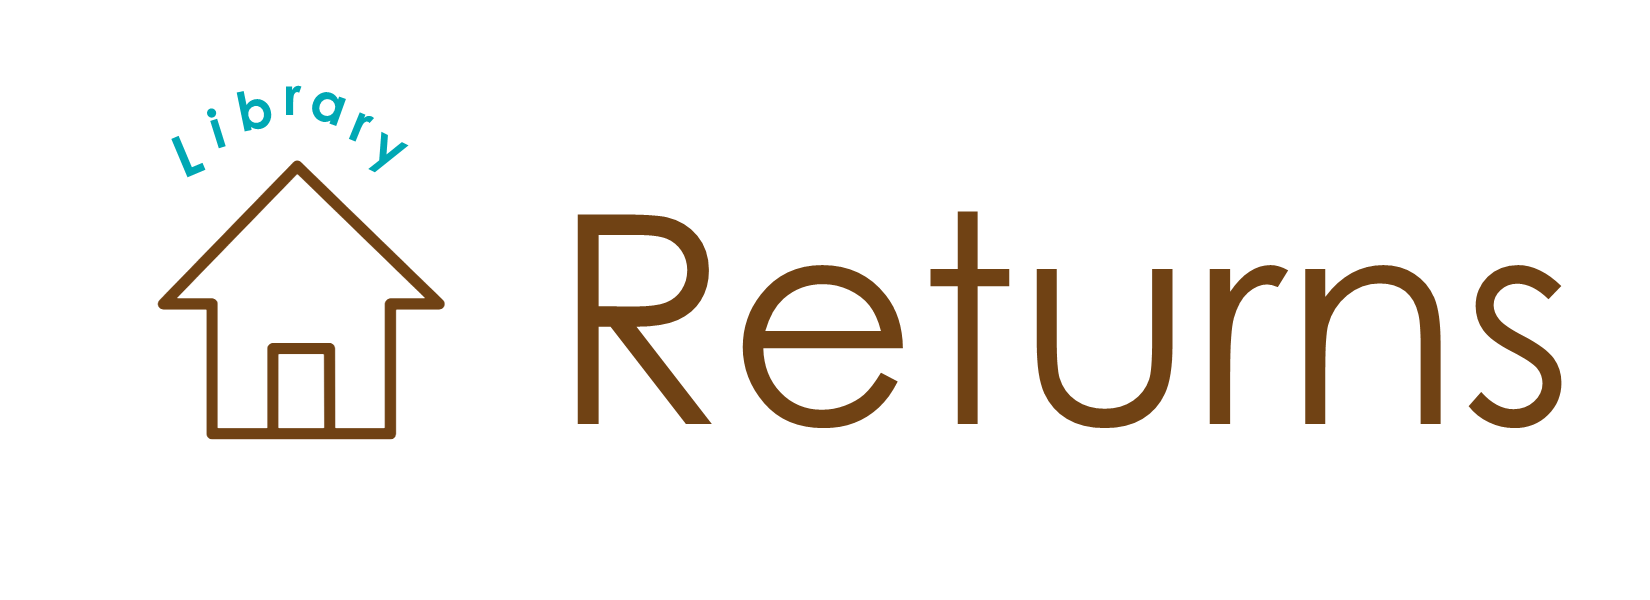 Library returns title banner